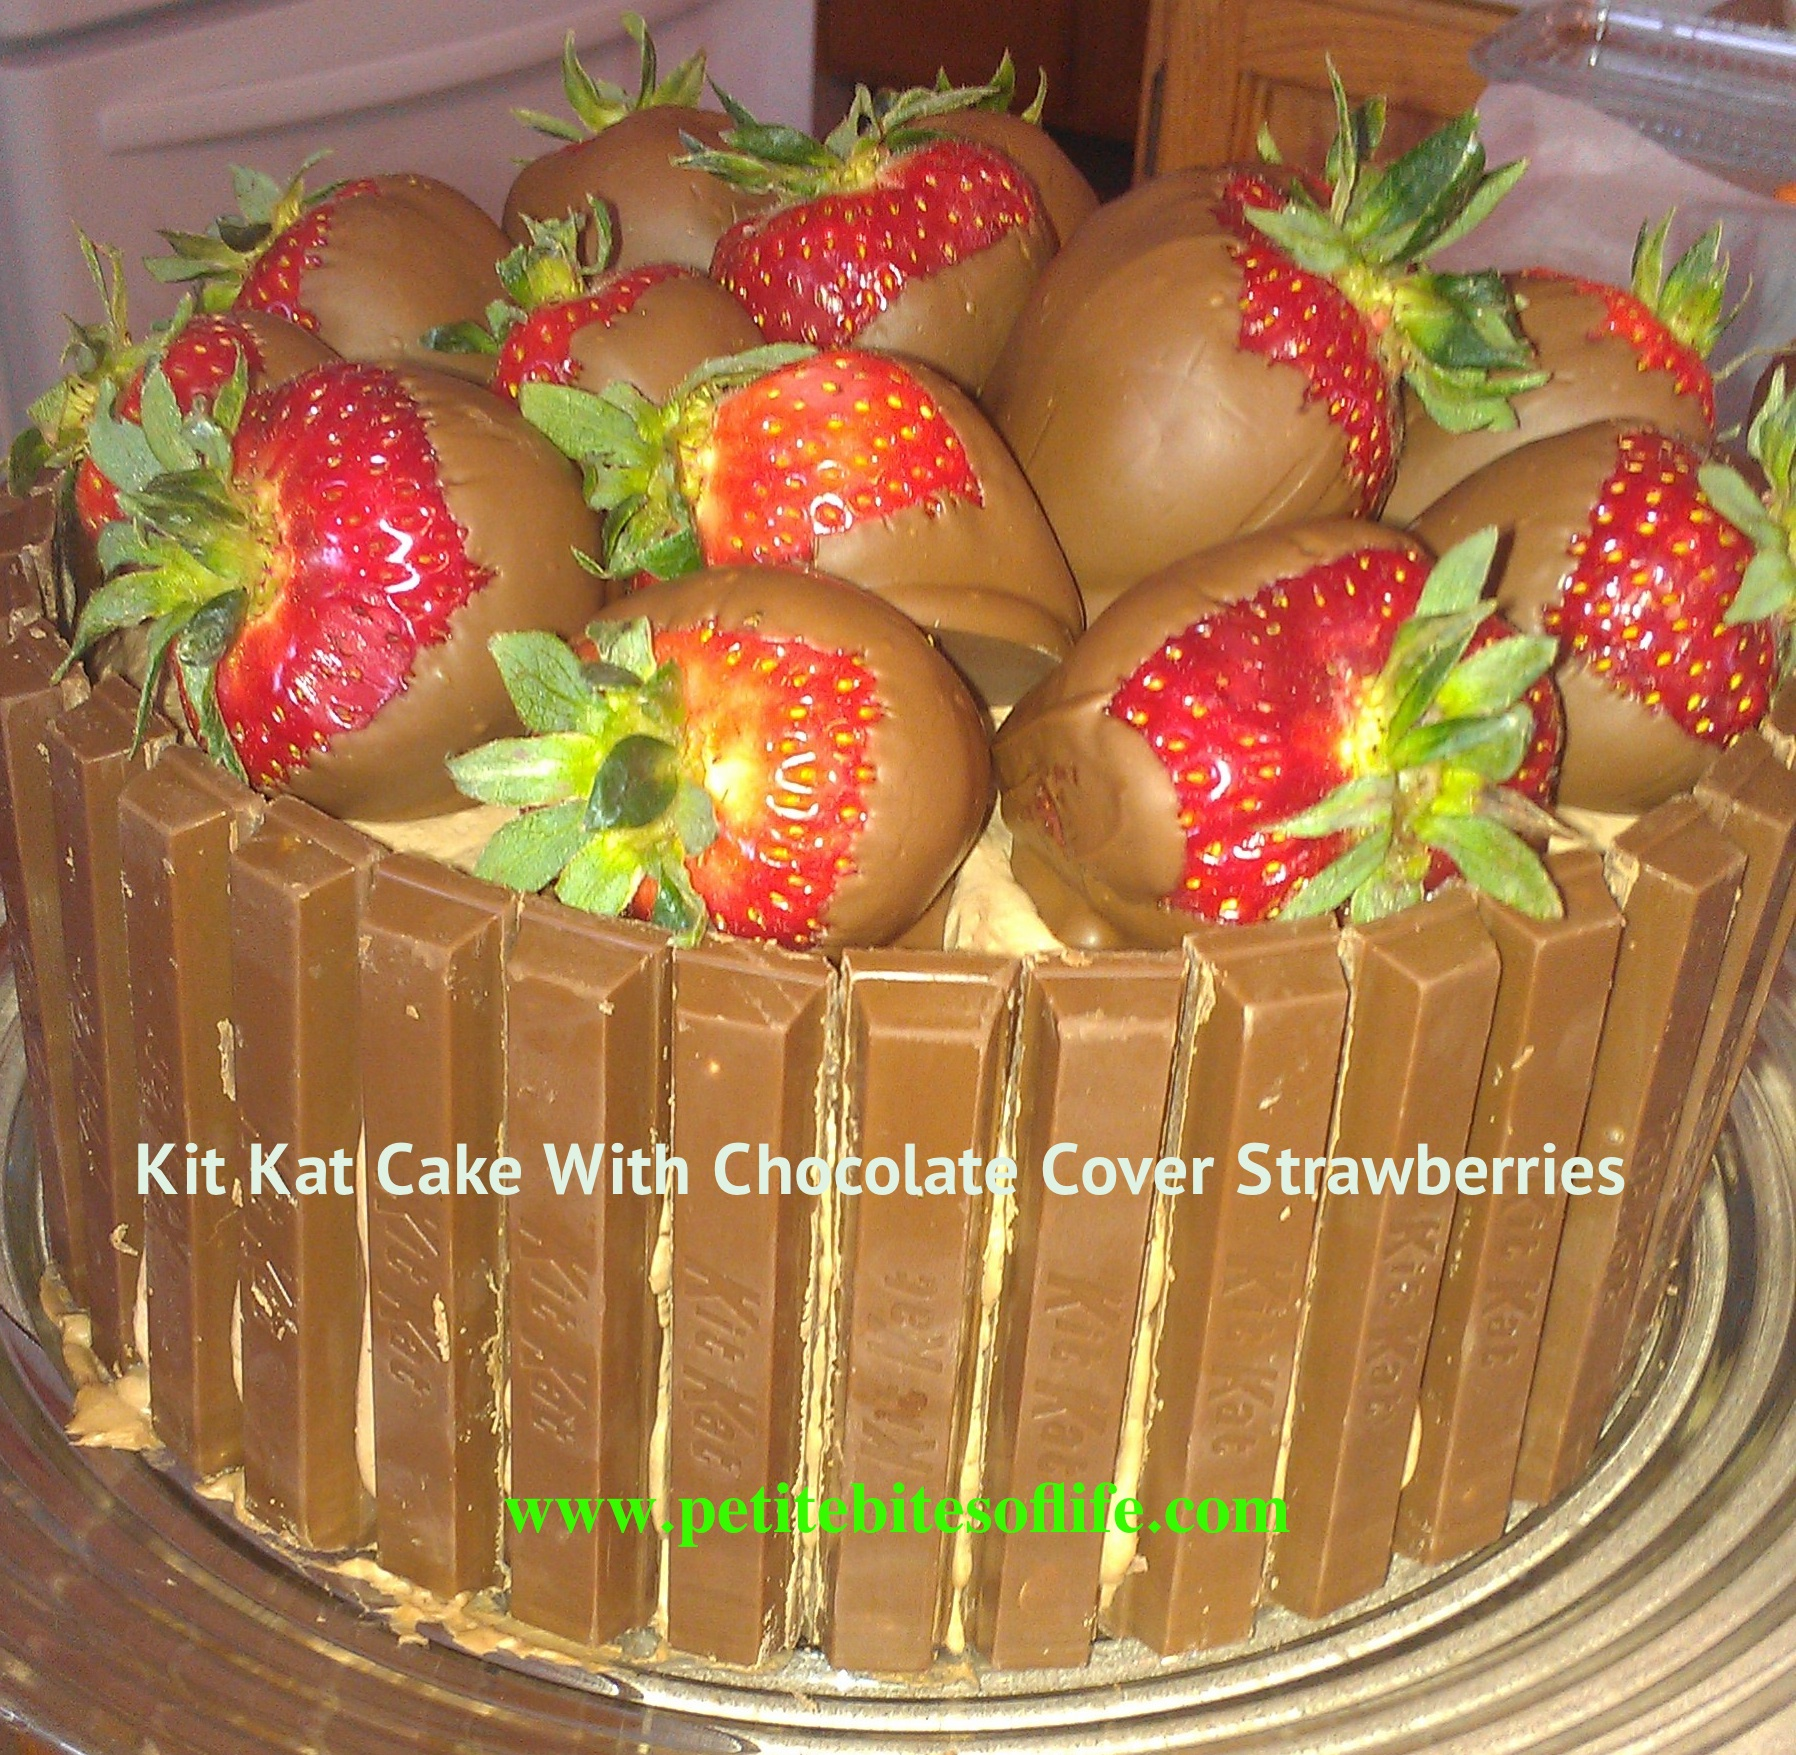 My Little Girl Turned 11 Years Old And She Wanted A Kit Kat Cake With Chocolate Covered Strawberries On Top